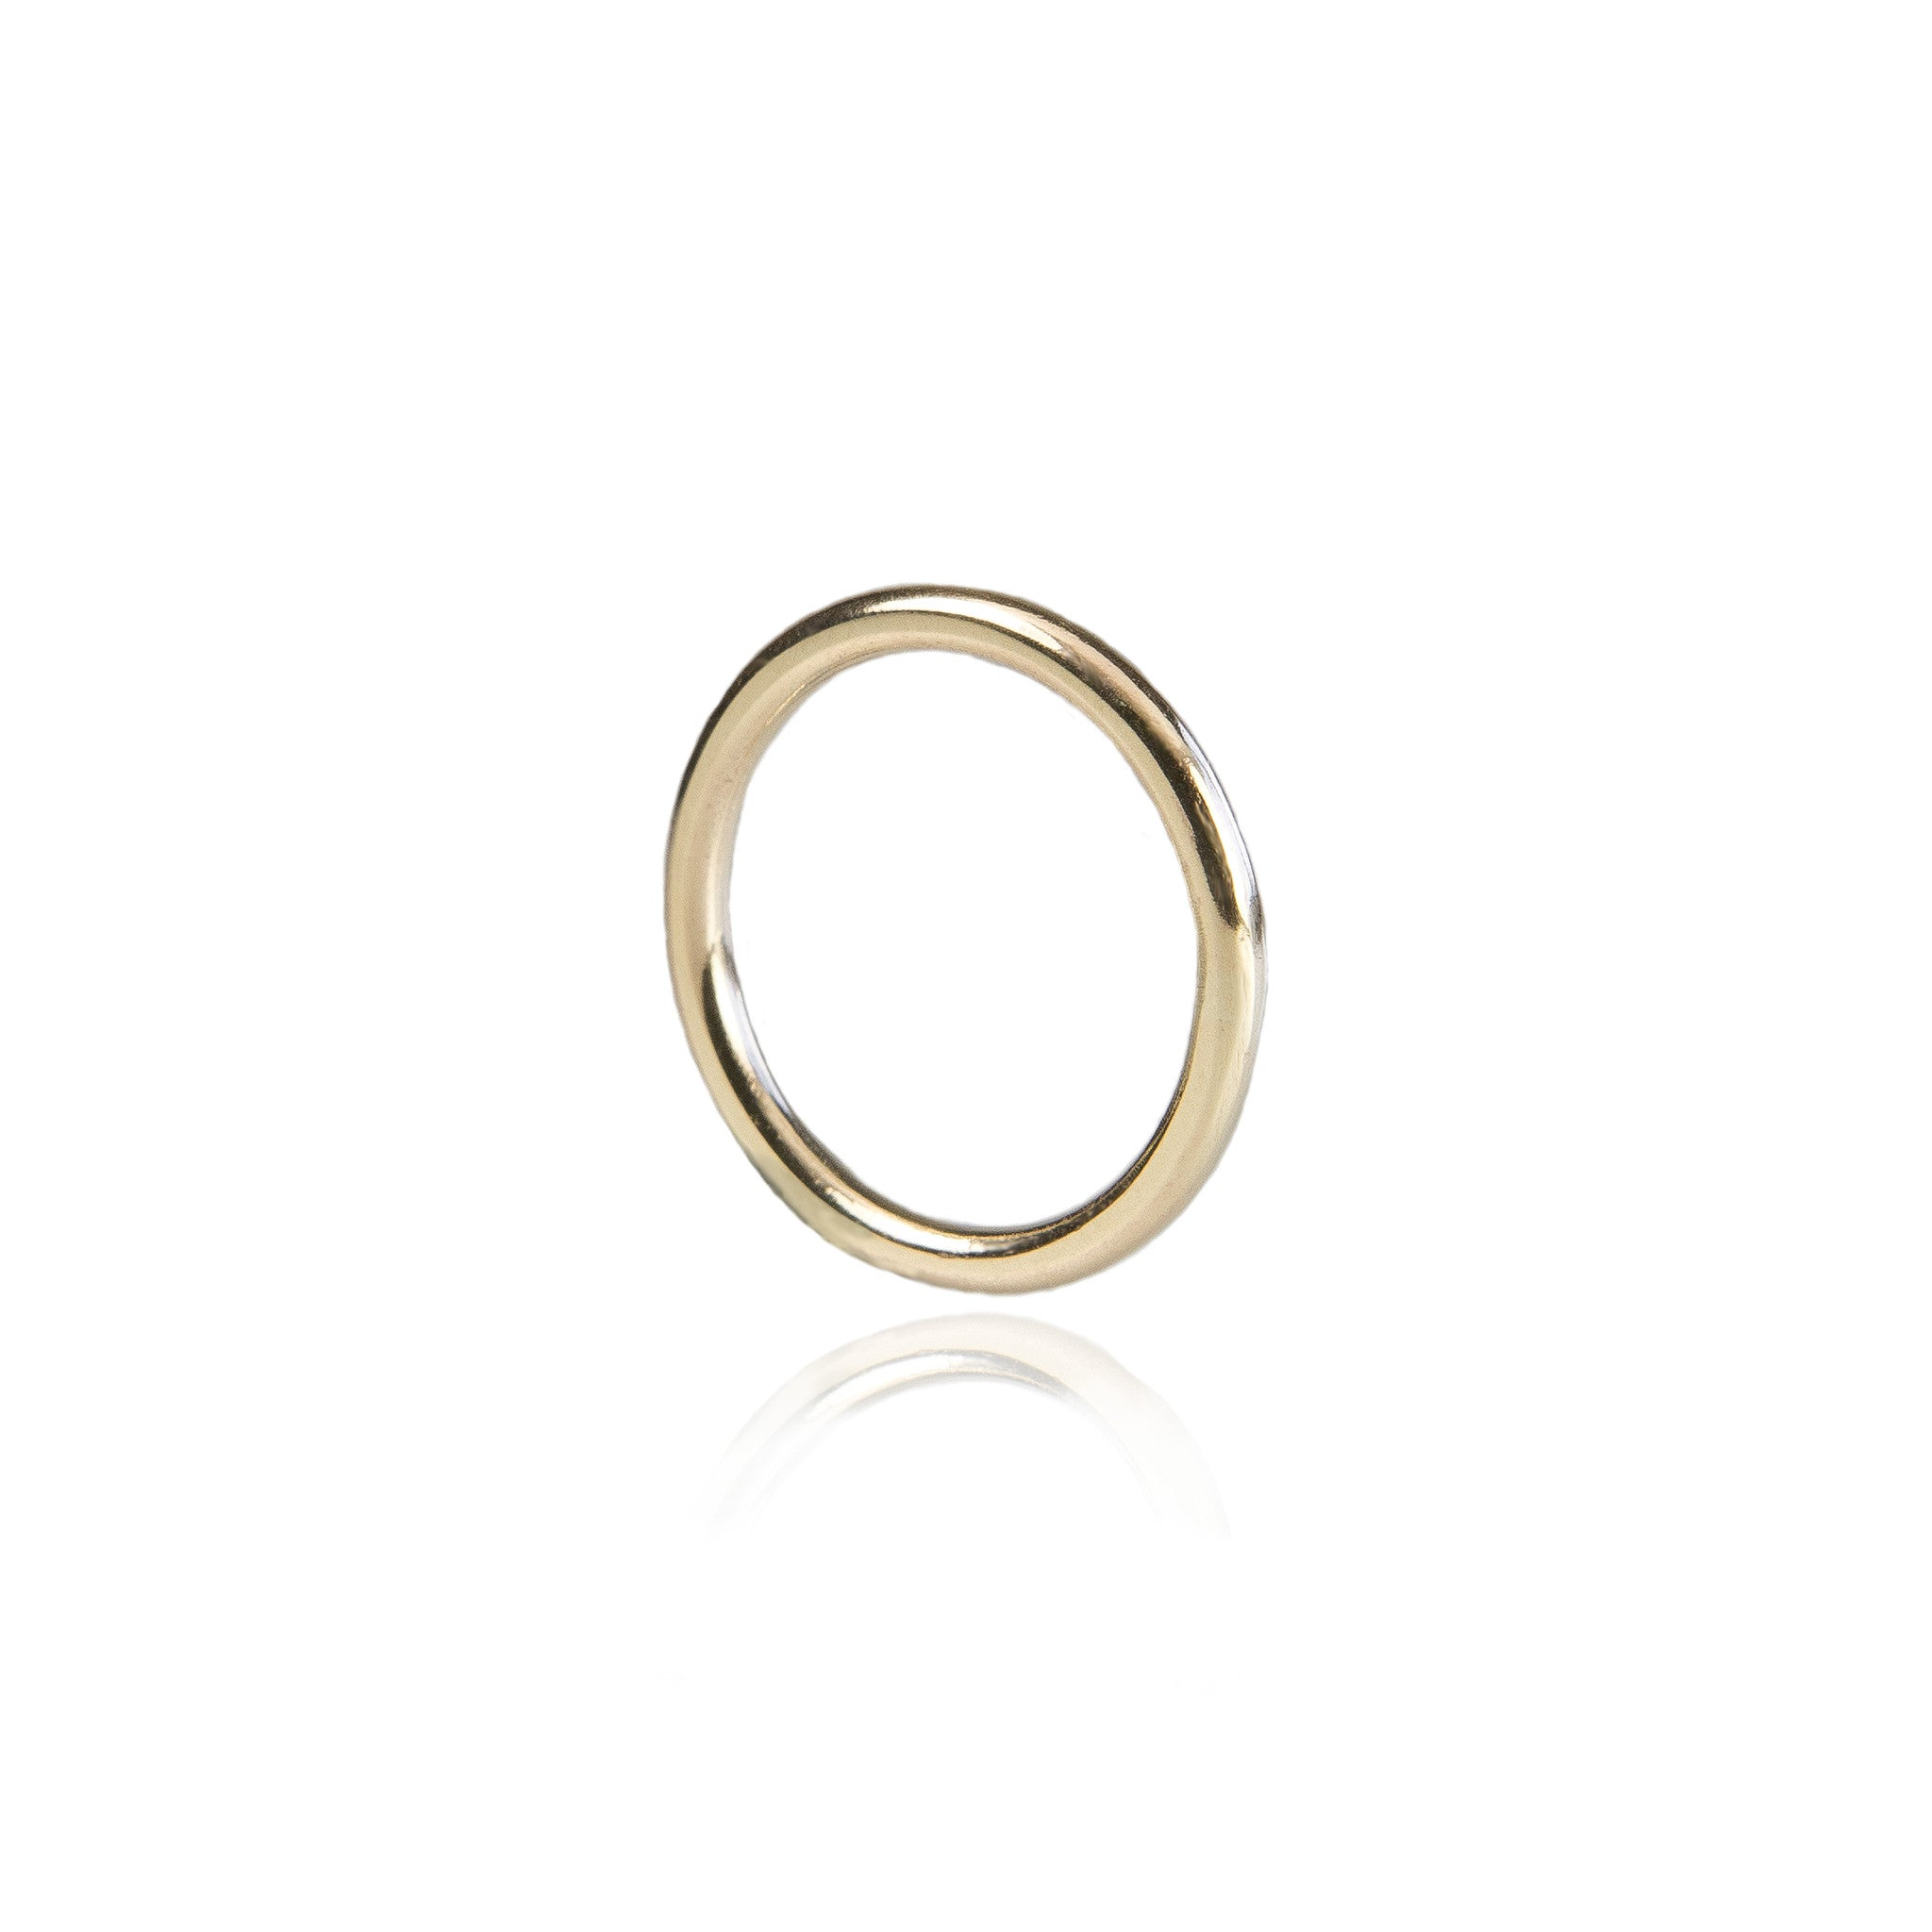 2mm halo wedding ring 18ct yellow gold - Halo Wedding Ring